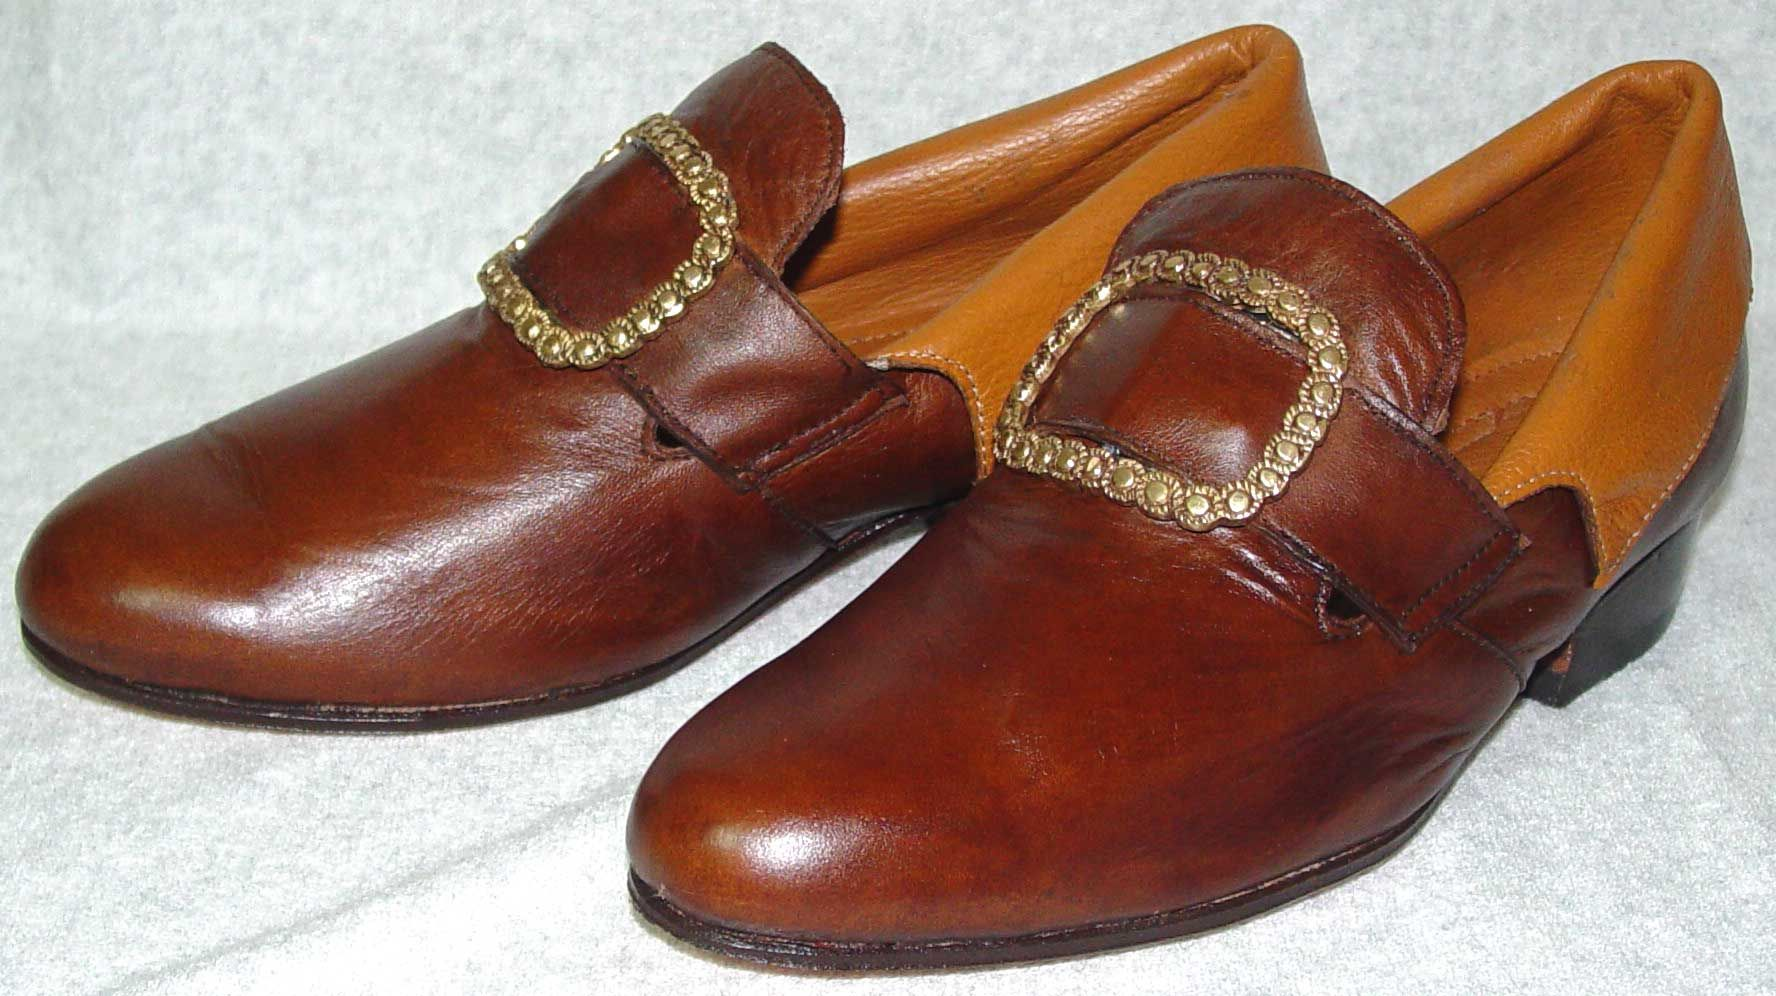 18th Century Pirate Shoes with Gold Buckle